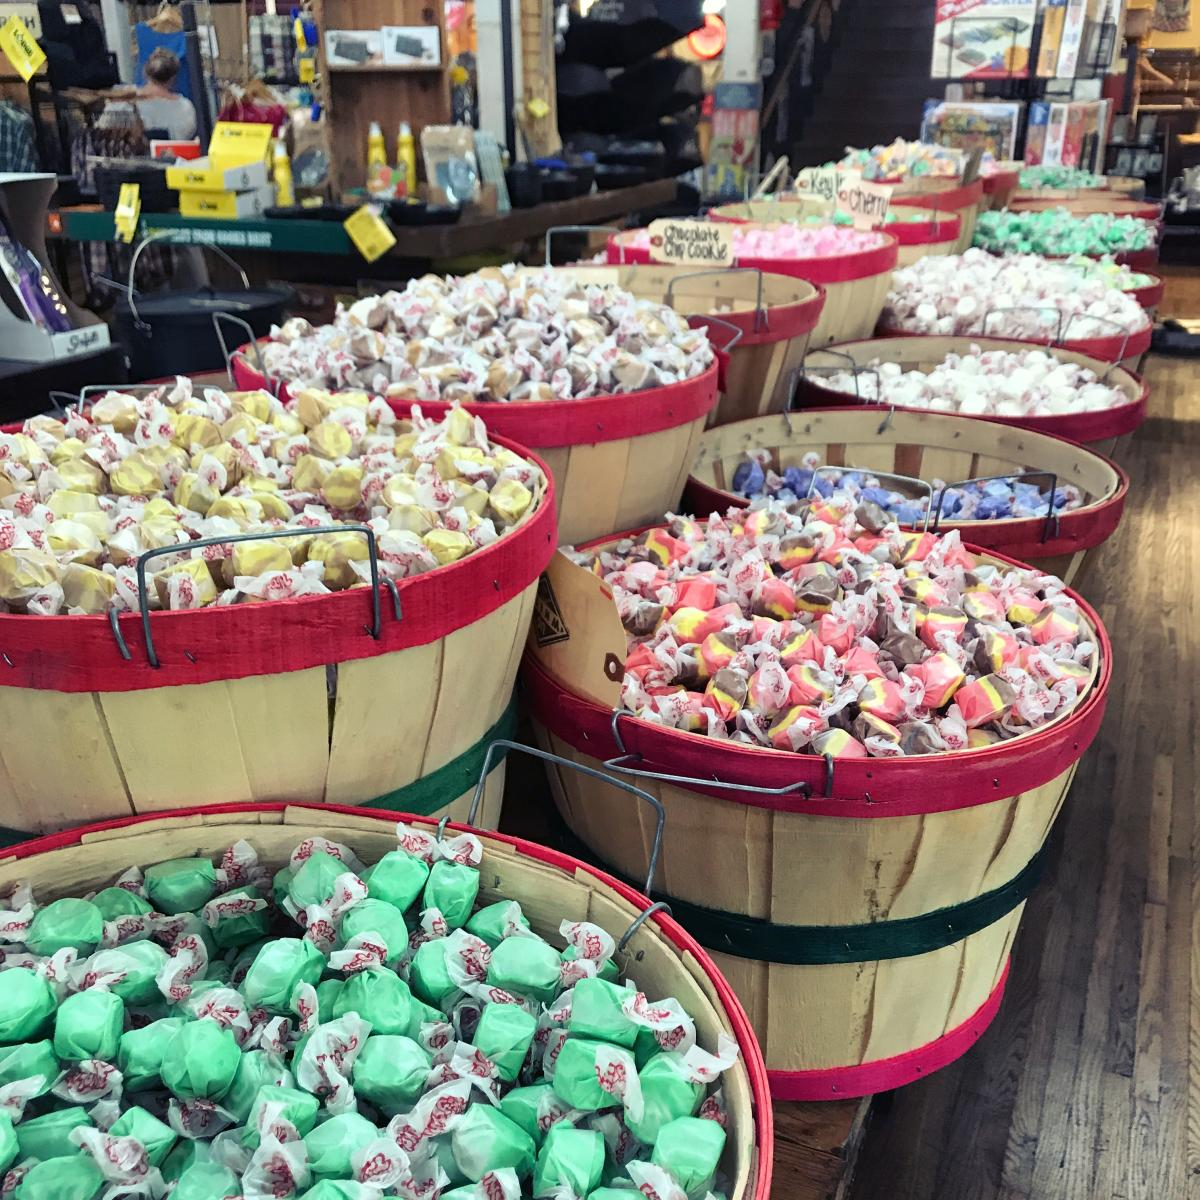 u.g. white mercantile candy